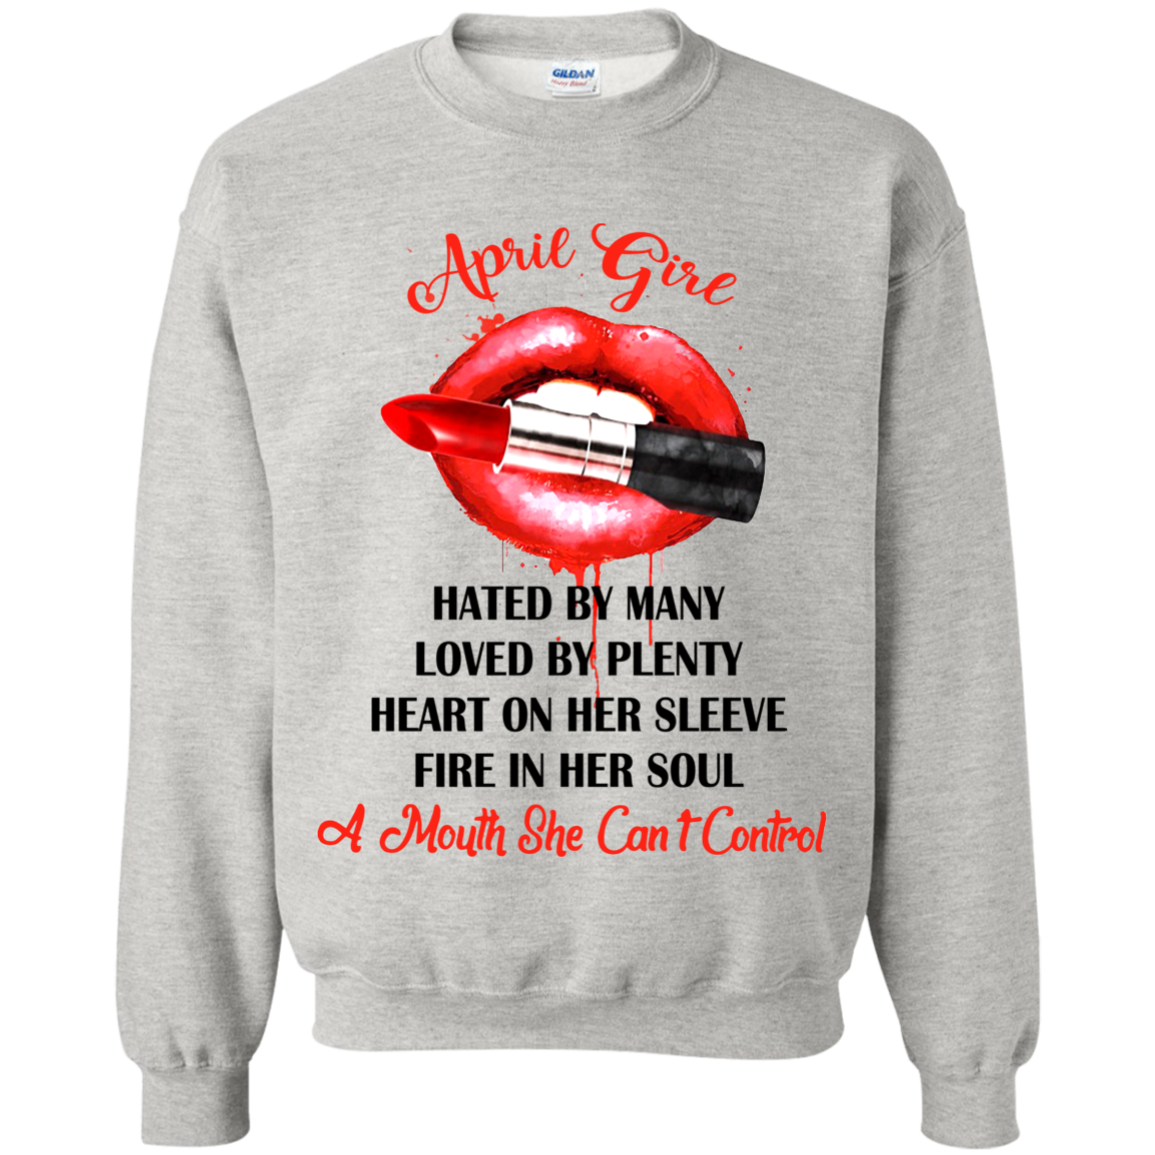 April Girl T shirts A Mouth She Can't Control Hoodies Sweatshirts TH